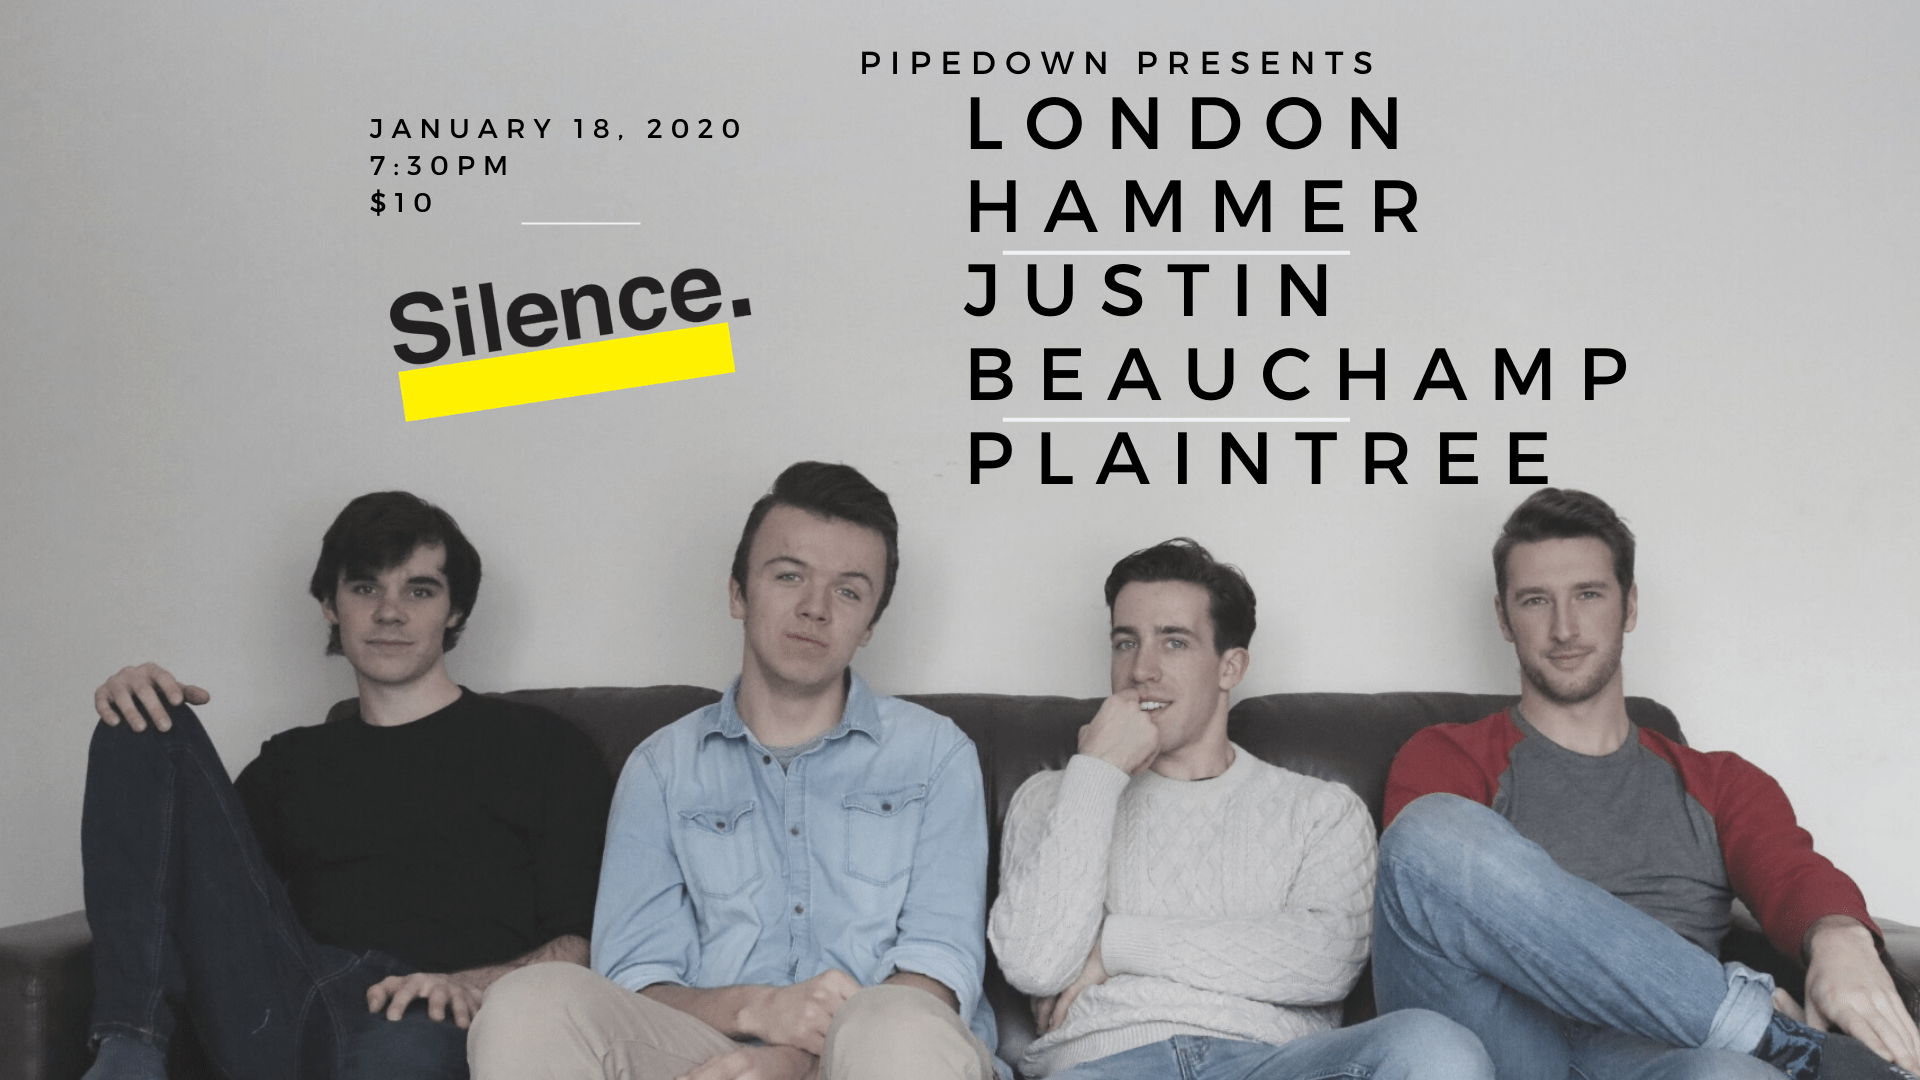 Pipedown! Presents London Hammer Justin Beauchamp Plaintree